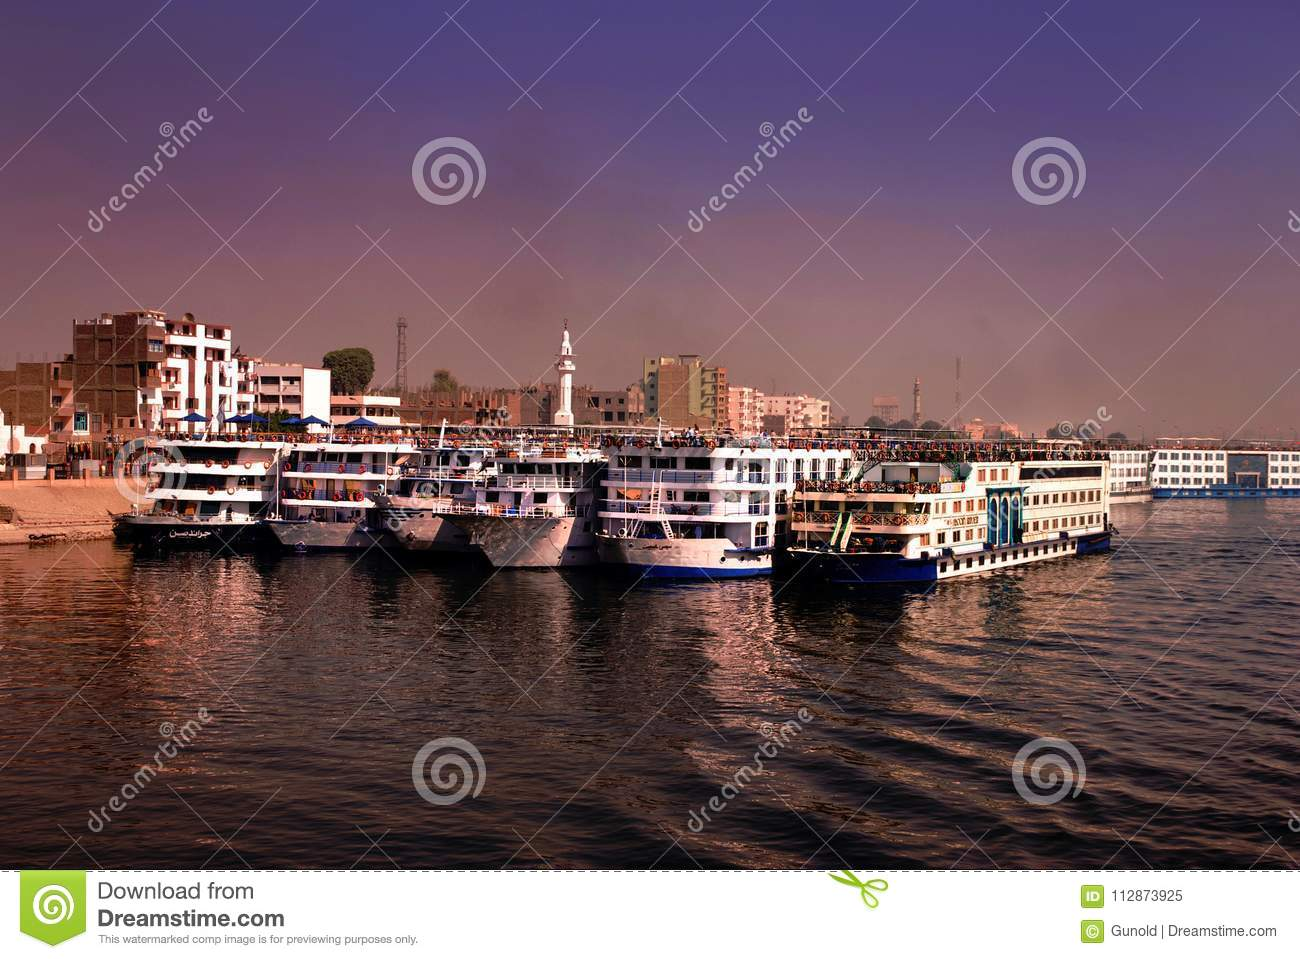 Cruise liners on river Nile anchored at Edfu, egypt